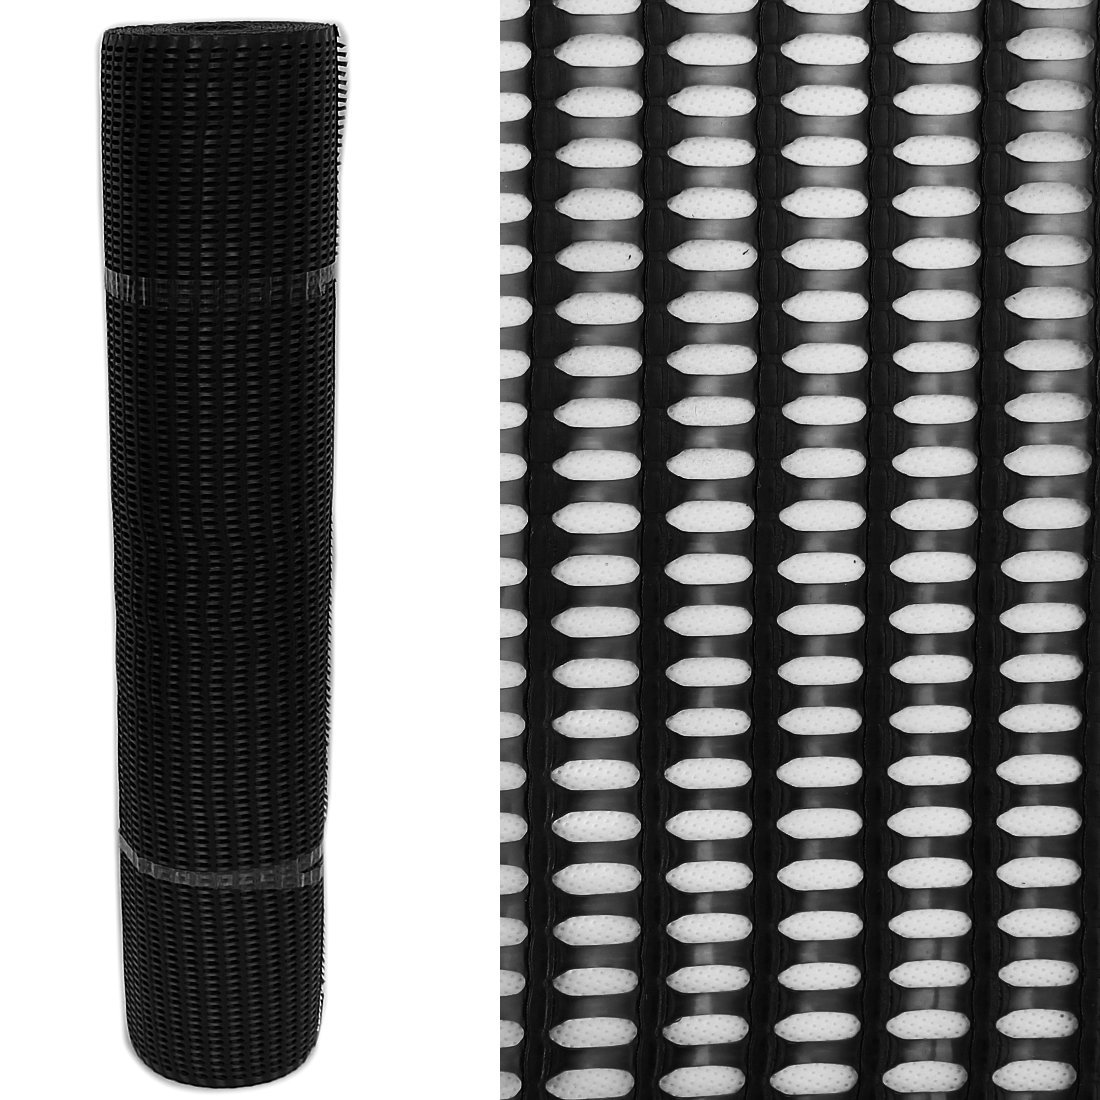 60% High Strength Windbreak Fence Netting Plastic Mesh, 2m wide by the Metre Black True Products ®